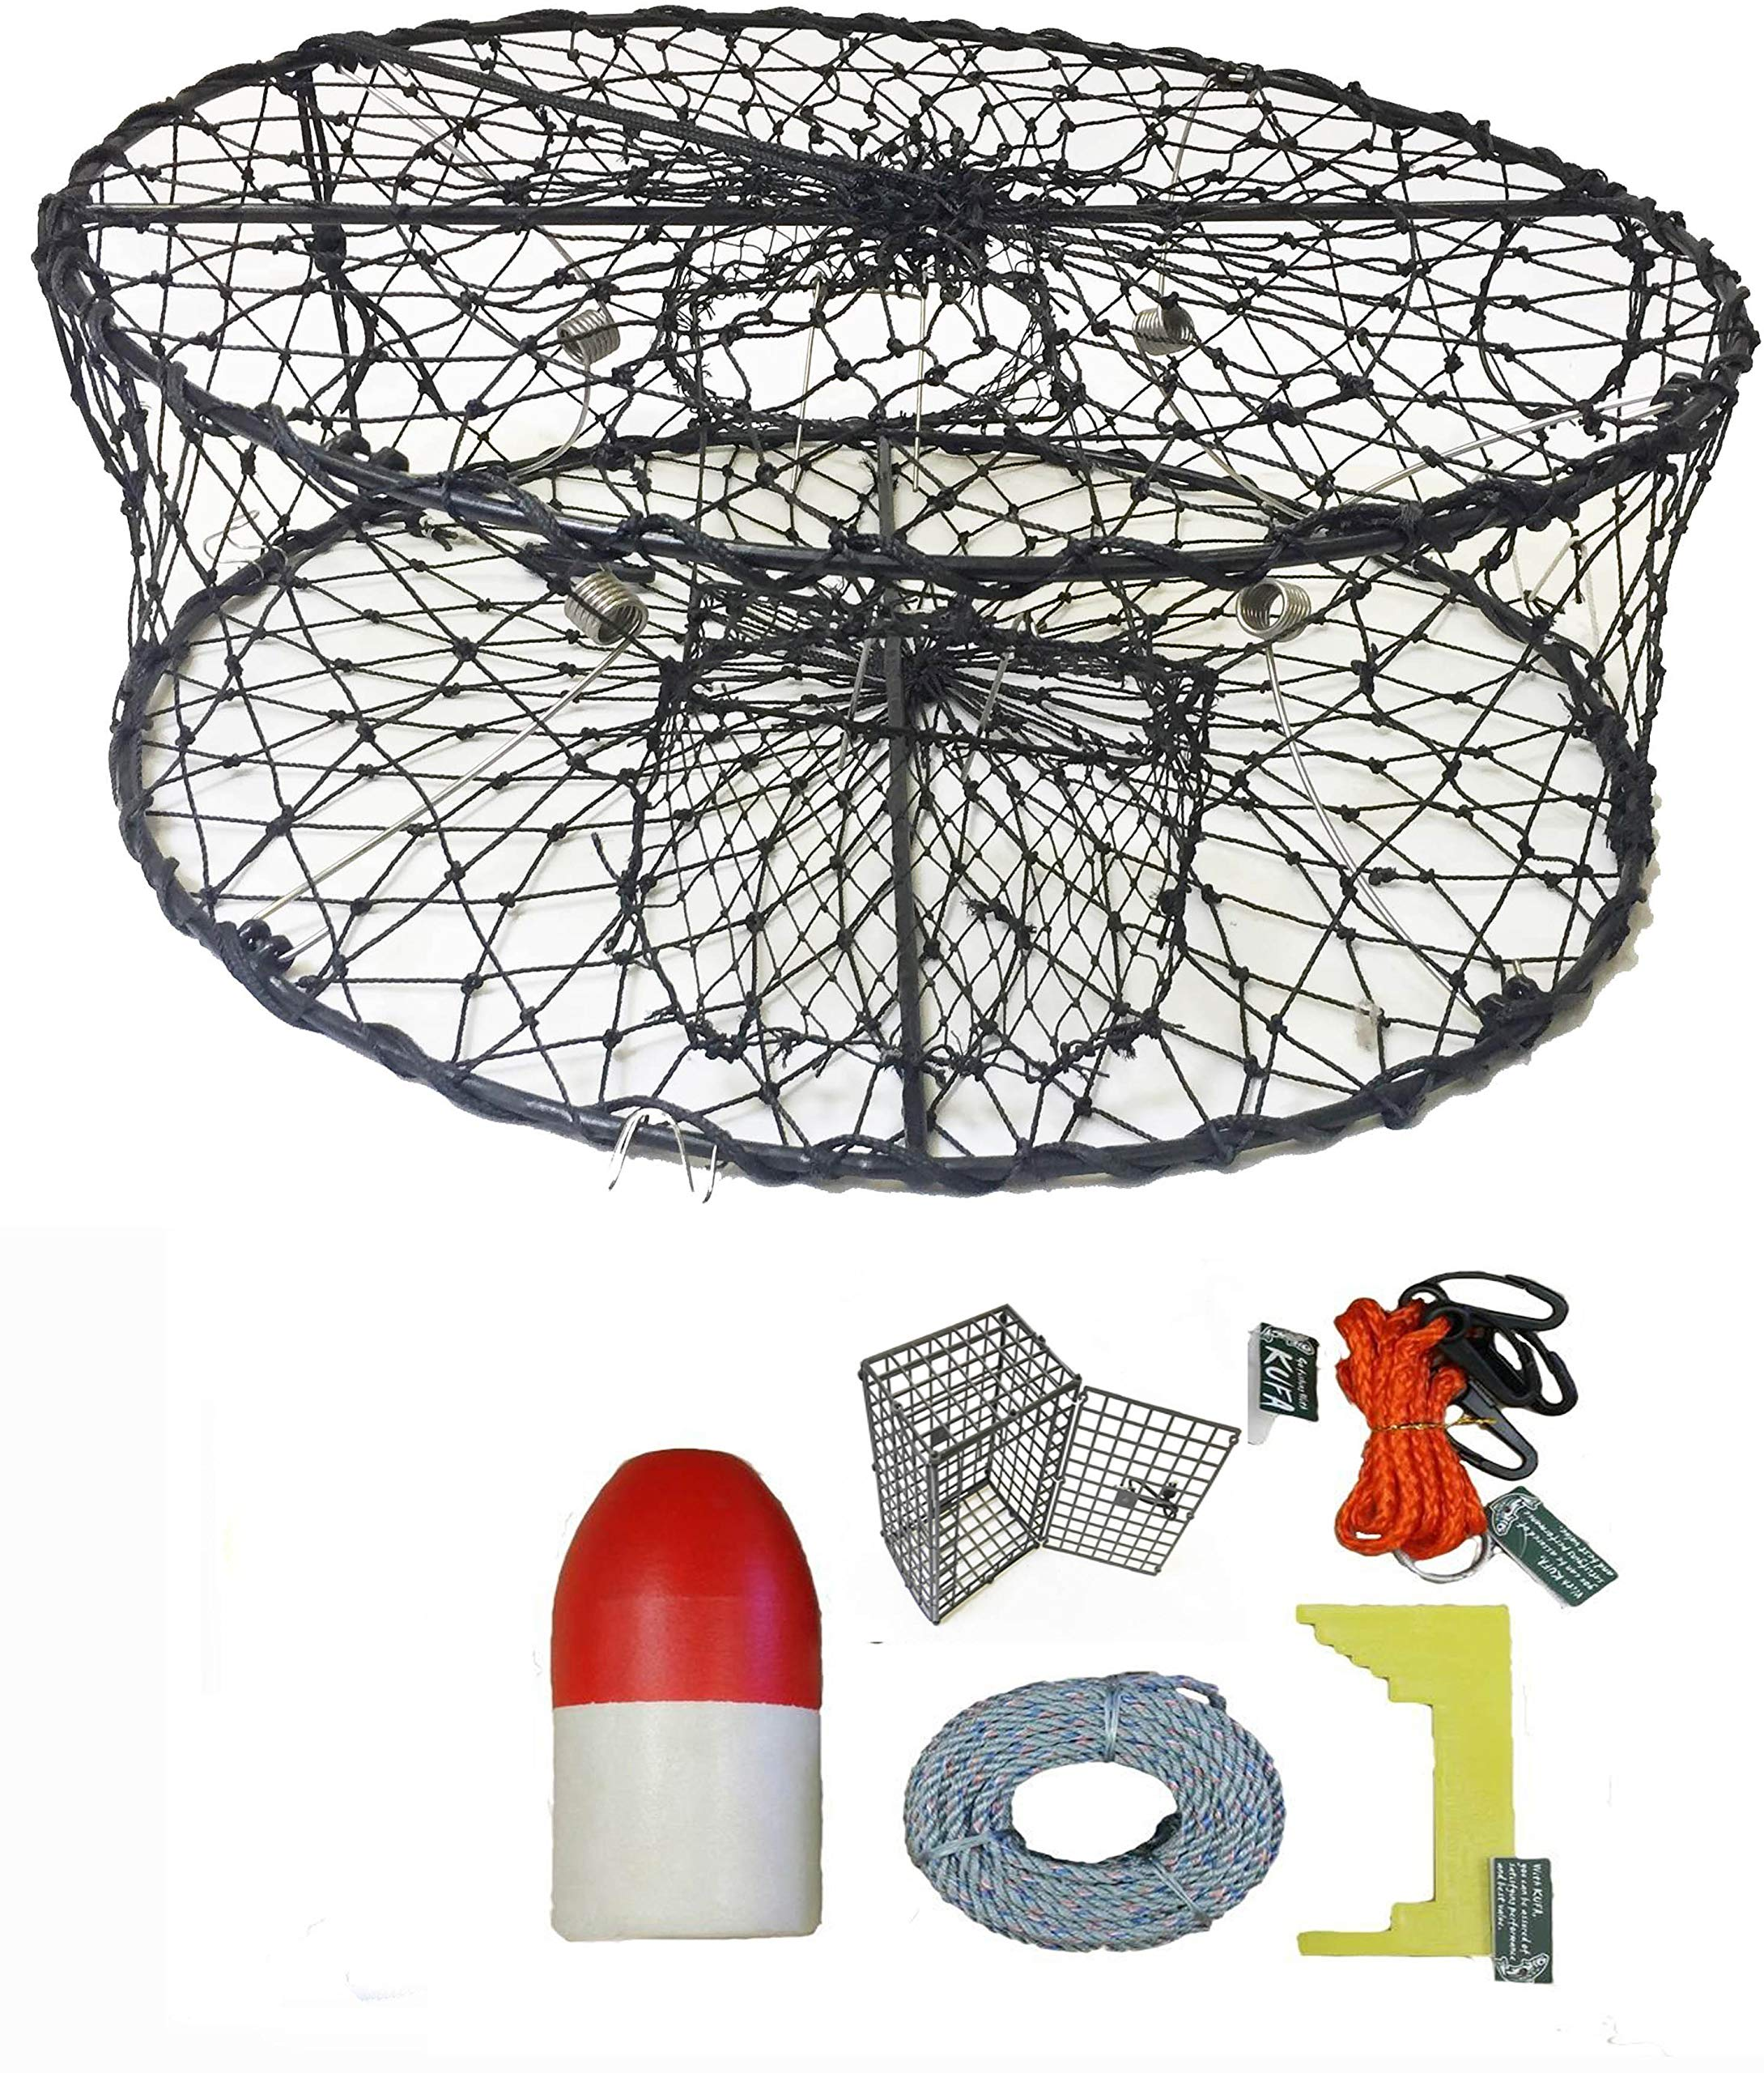 KUFA Sports Foldable Crab Trap with 11'' Red/White Floats, Harness, Bait case & Crab Caliper Combo (CT50+CEC1) by KUFA Sports